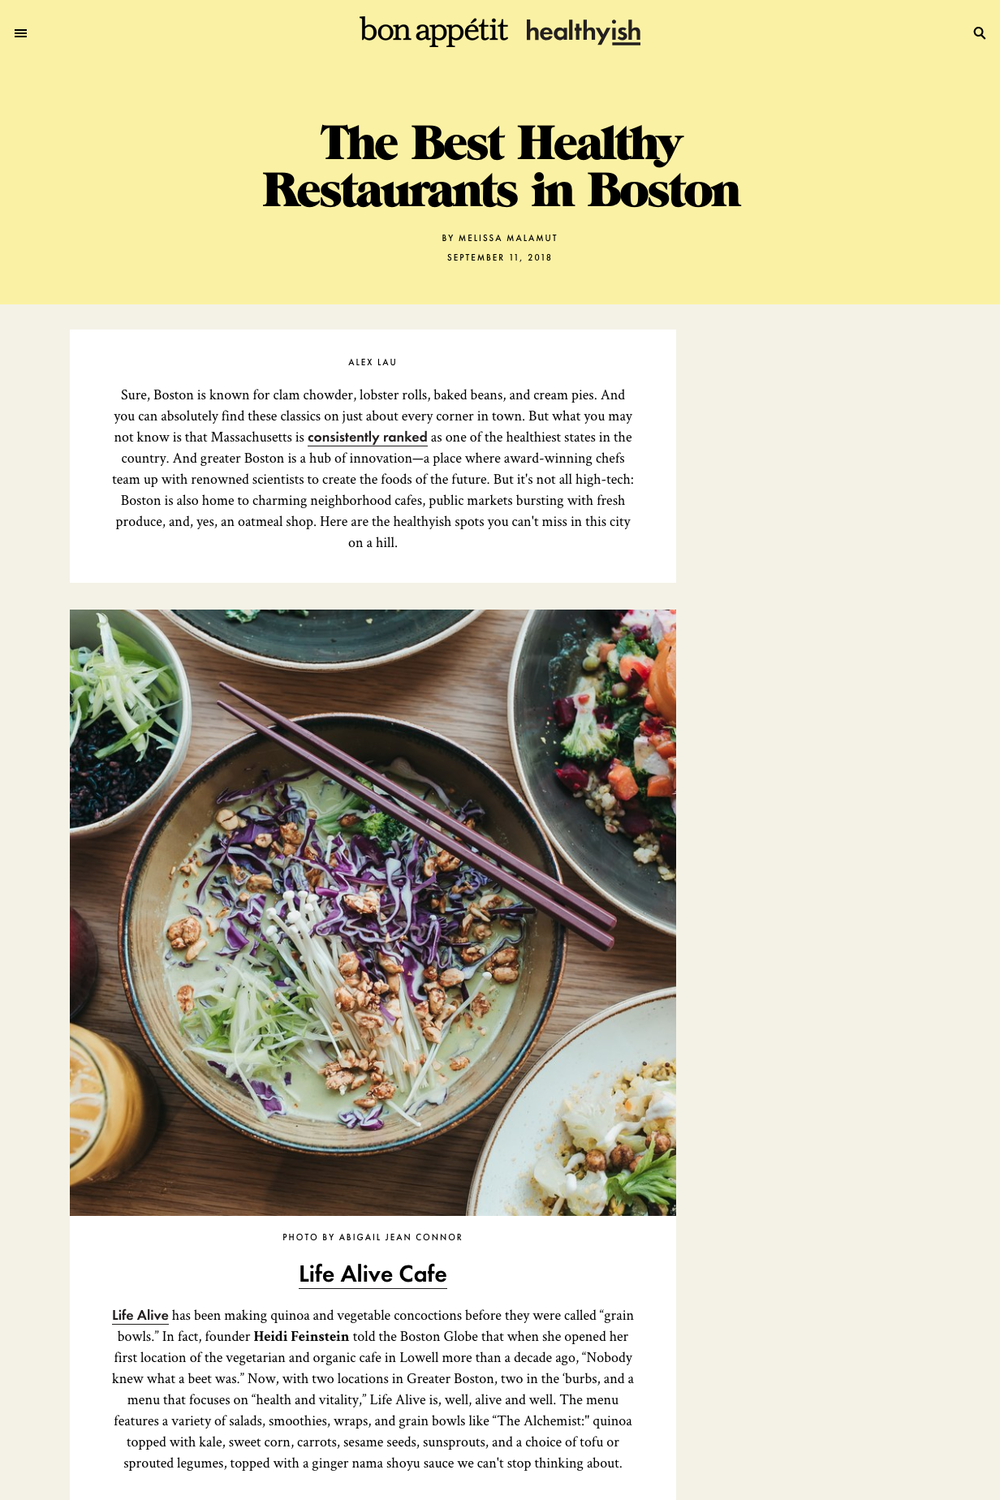 2018.09.11_(bon appetit) healthyish_Life Alive Brookline_cropped 2x3.png